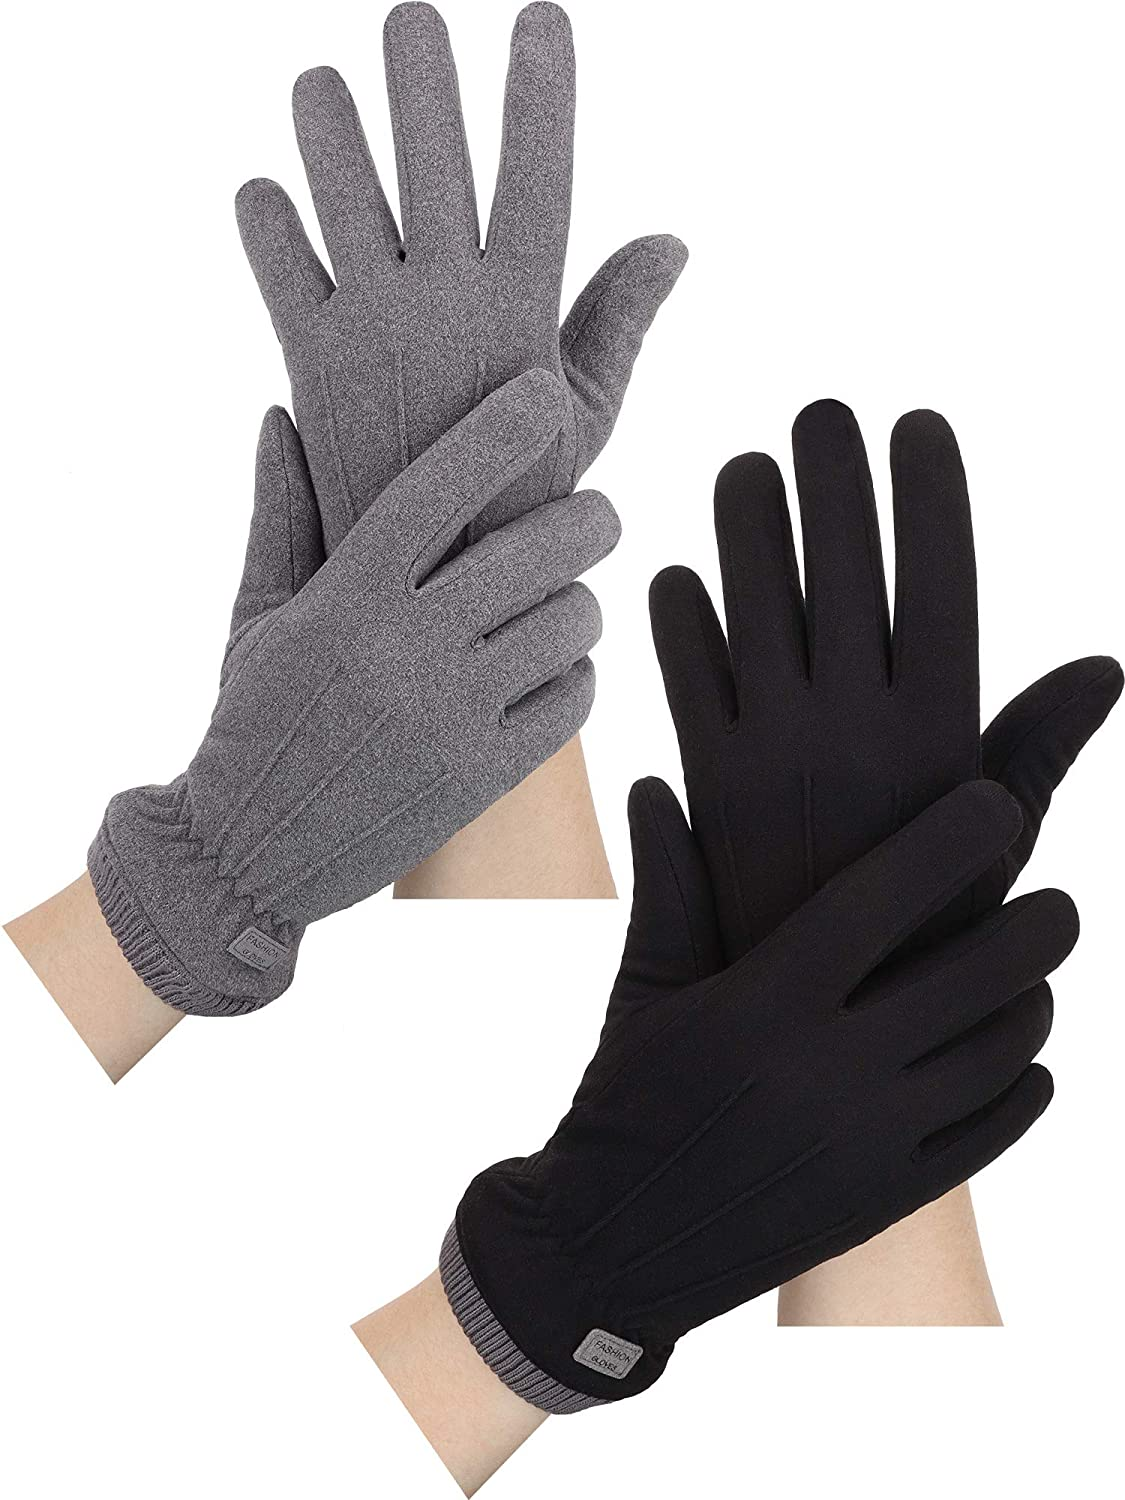 2 Pairs Women Winter Warm Touchscreen Gloves Fleece Texting Gloves Thermal Windproof Gloves with Elastic Cuff